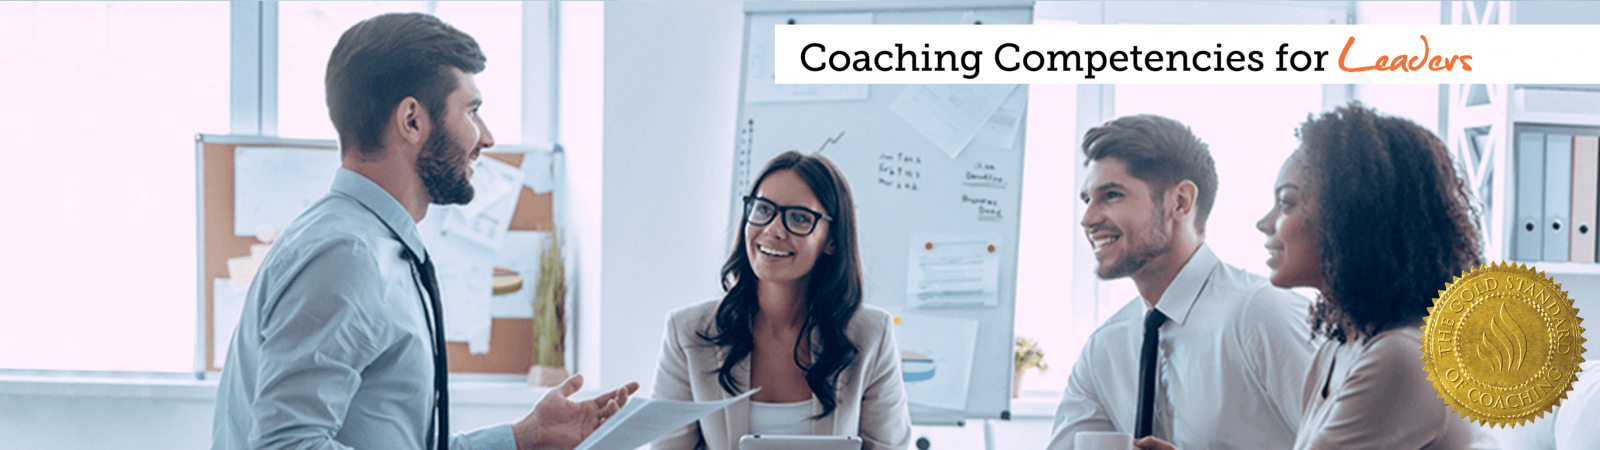 Coaching Competencies for Leaders. September 19 – November 21, 2019 / Online.